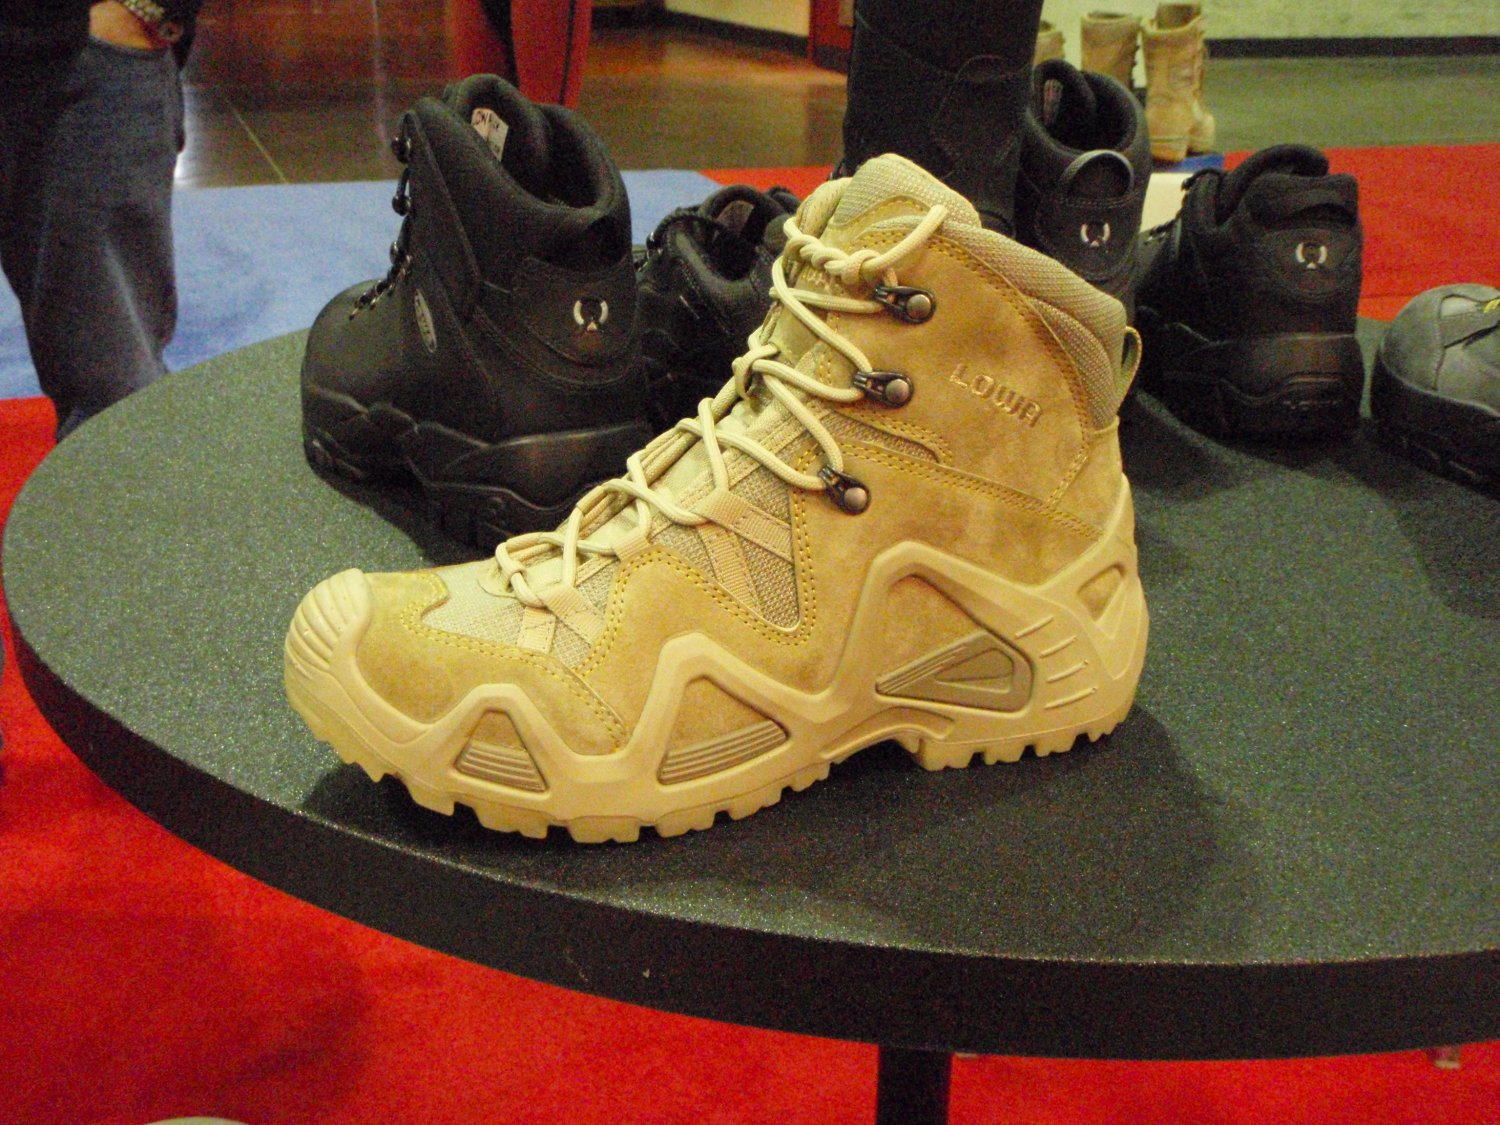 Lowa Tactical Boot 1 <!  :en  >LOWA Tactical Boots Introduces LOWA Desert Mid Tactical Boot at SHOT Show 2009<!  :  >